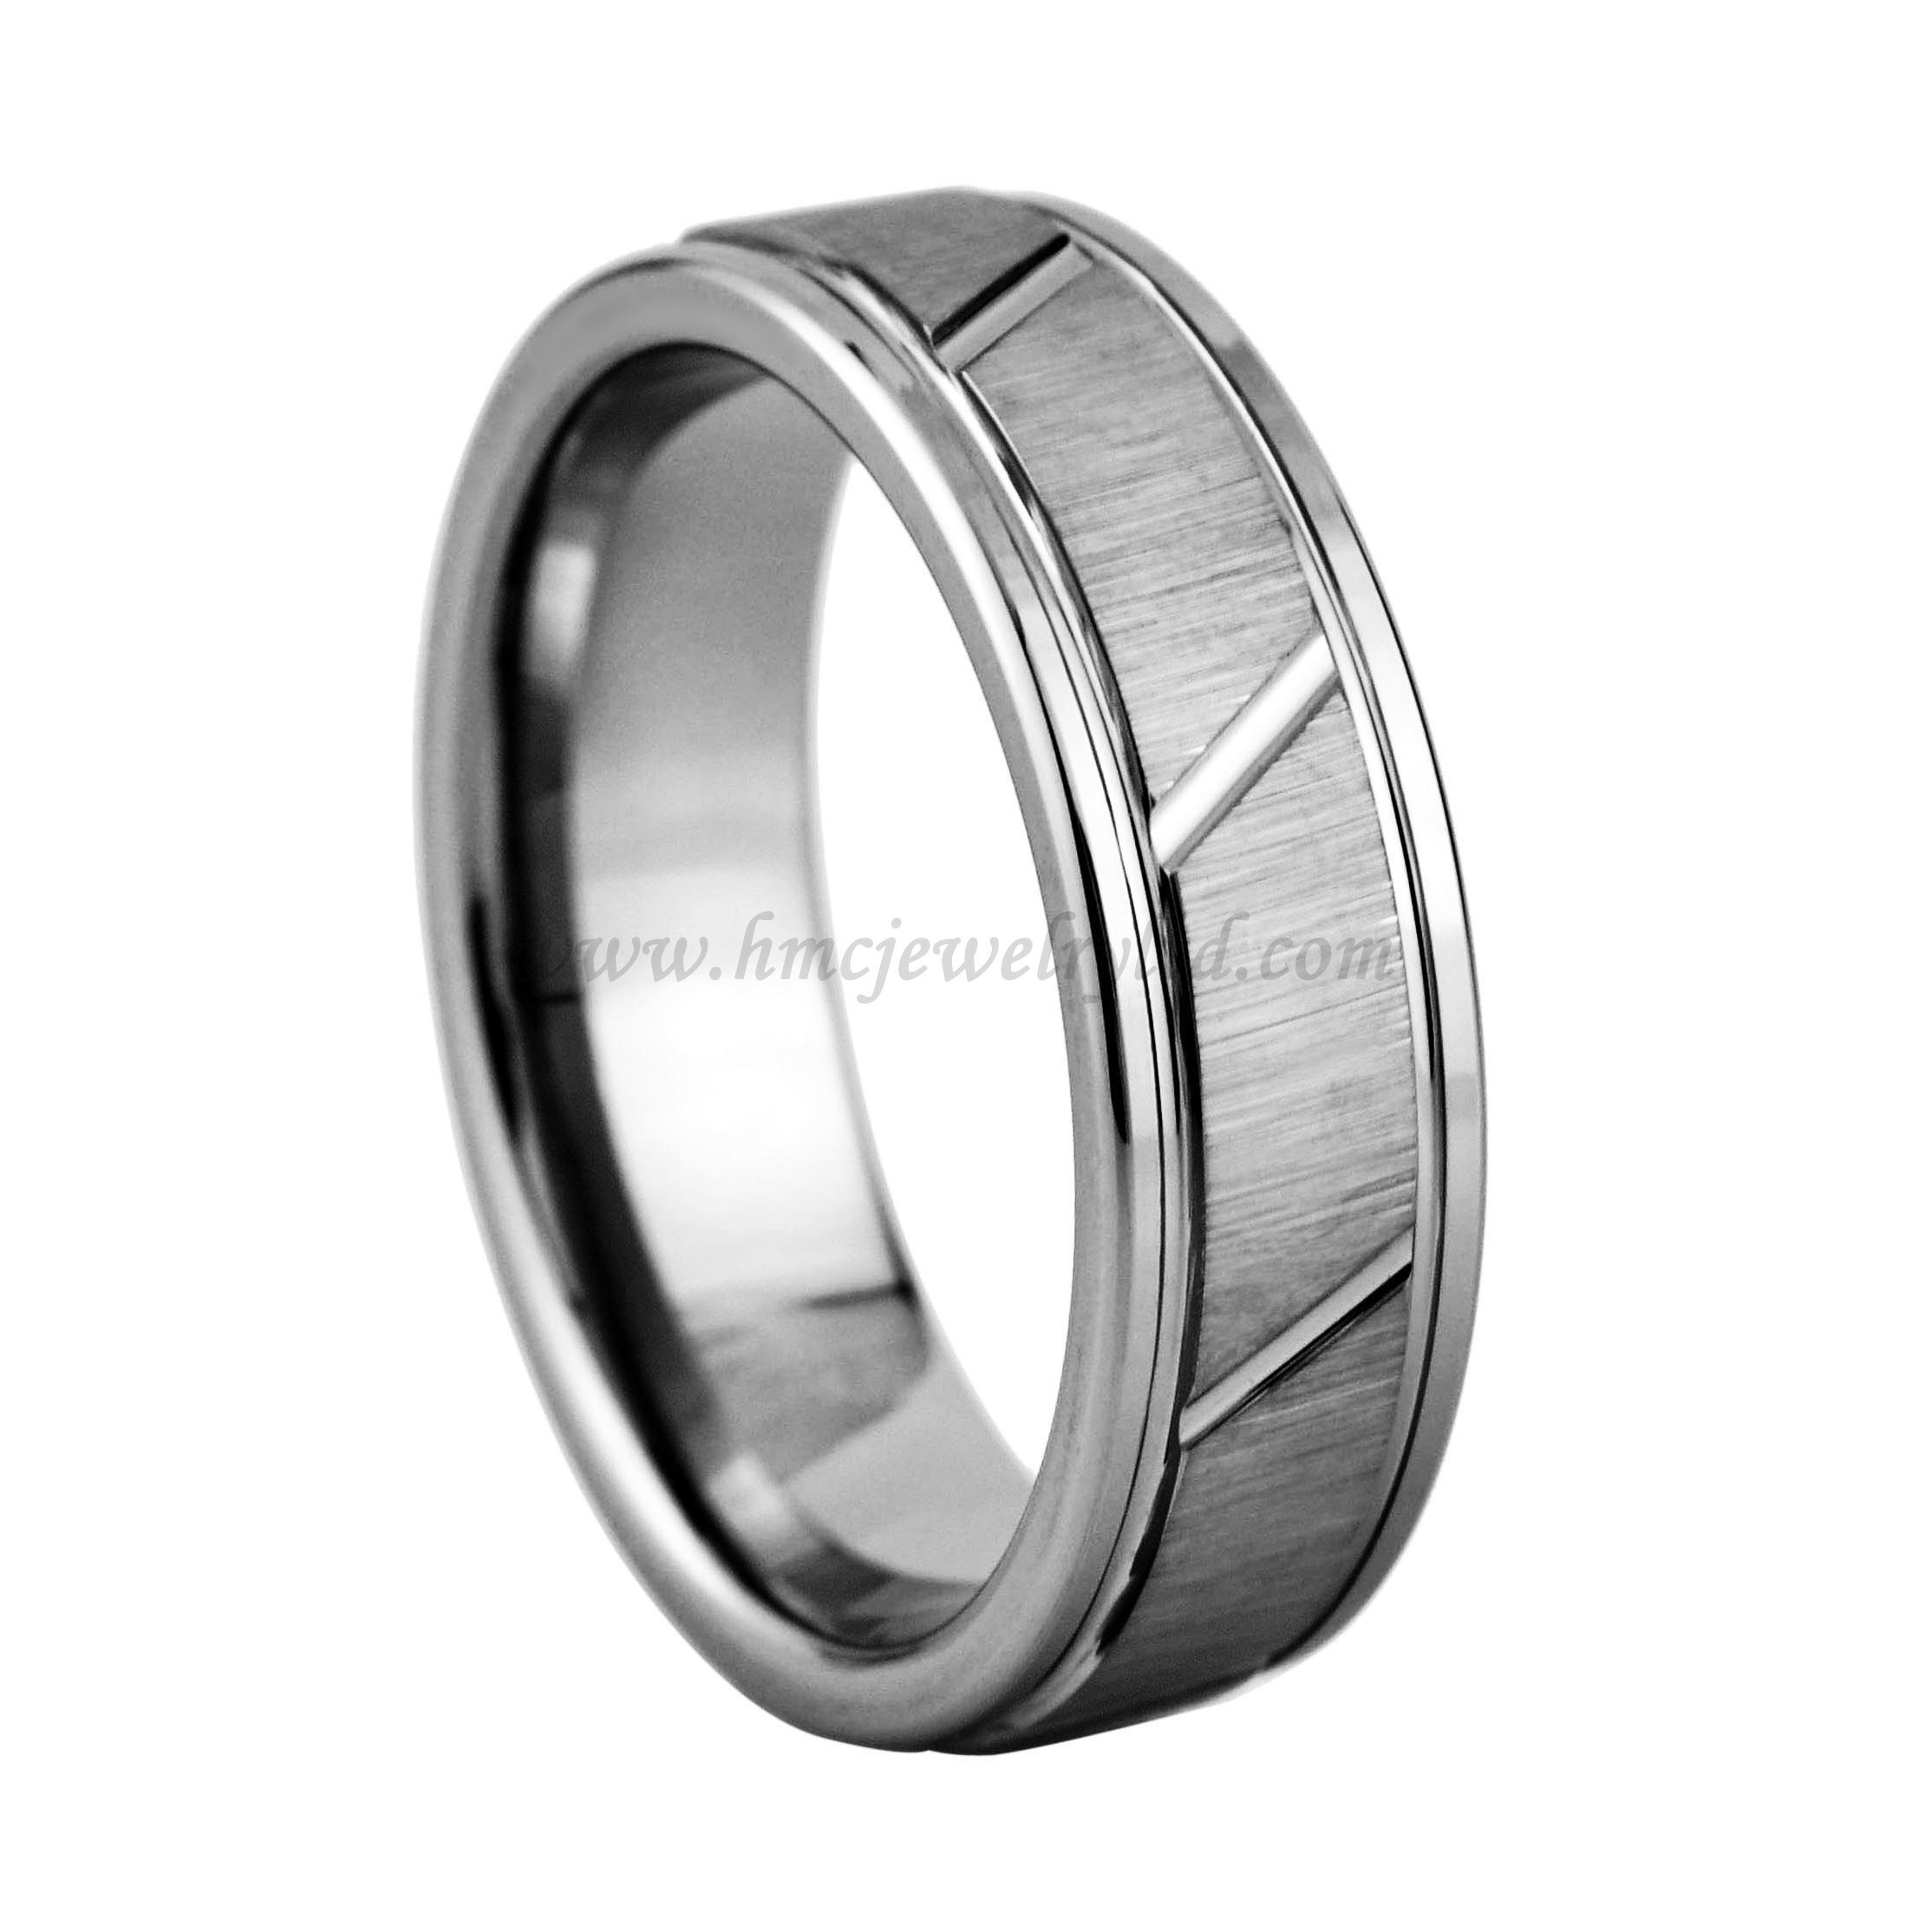 crafted pin this tungsten of out carbide ring rings handcrafted what that a is koa wood